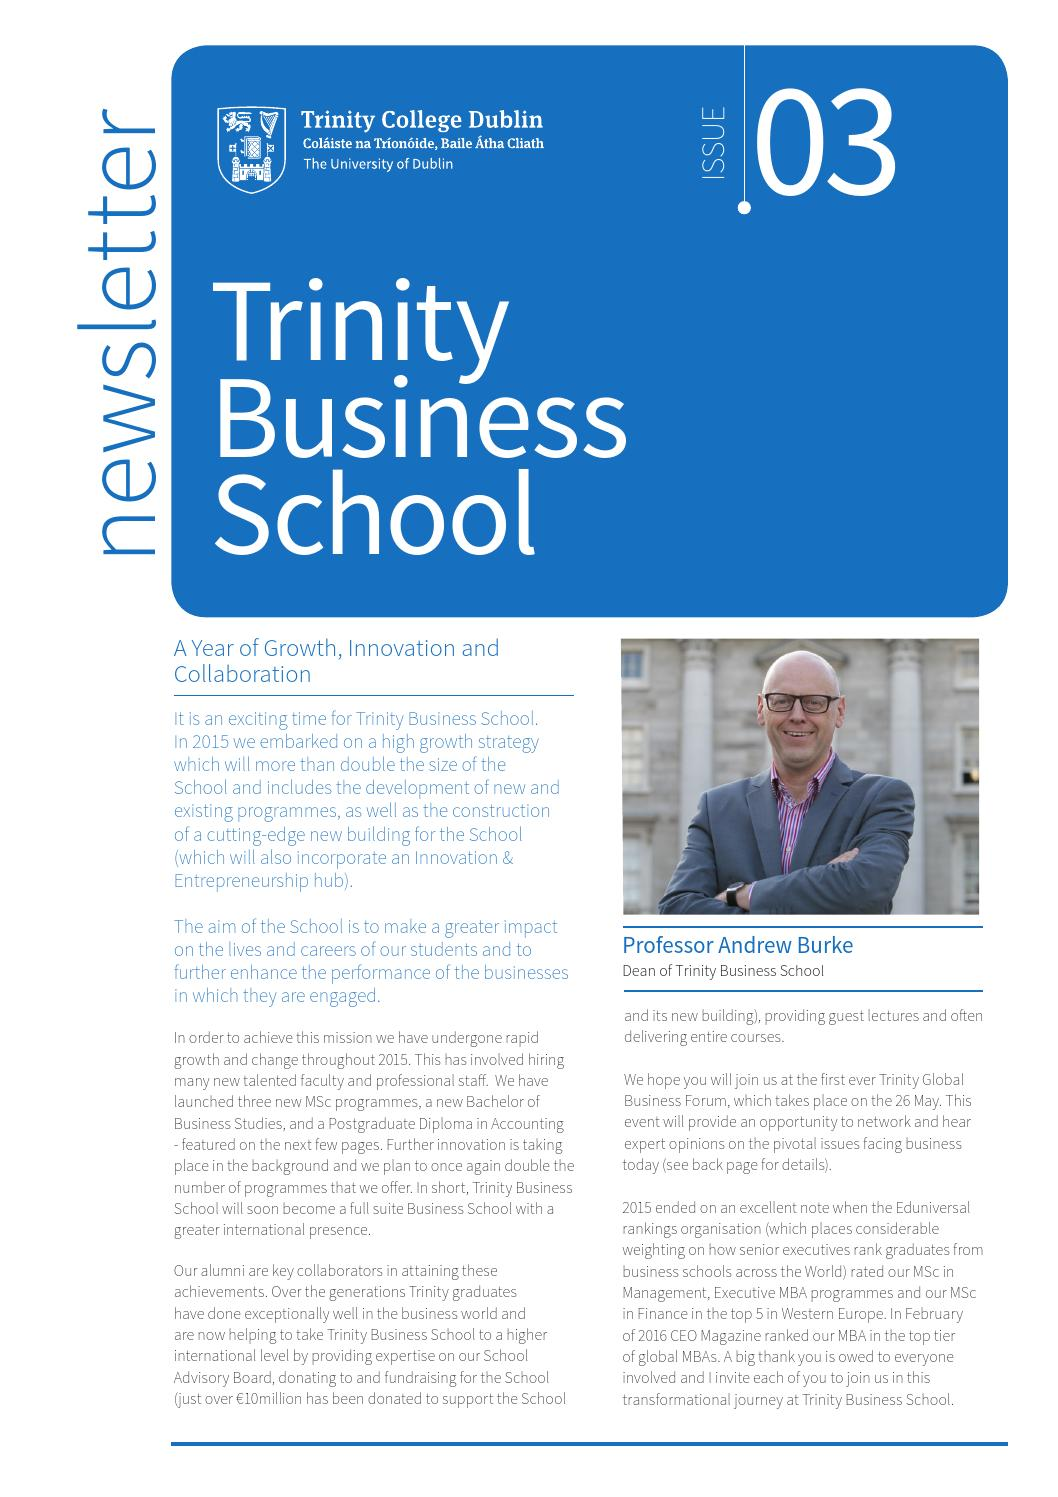 Trinity College Dublin Business School Newsletter by TCD